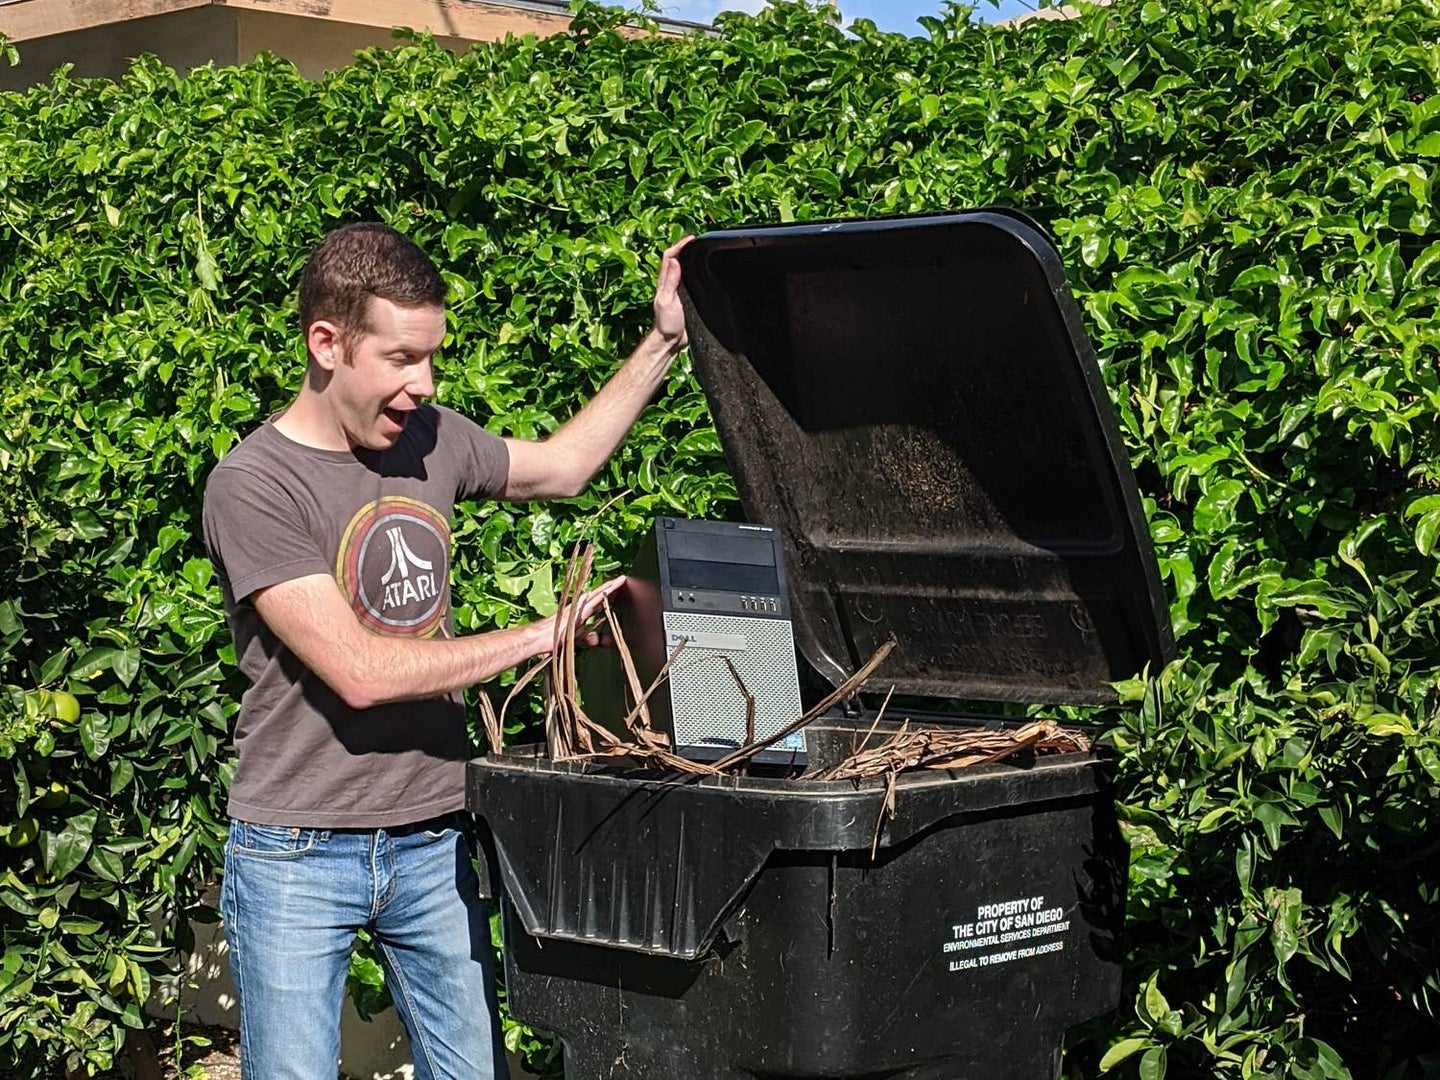 Man opening a trash can.